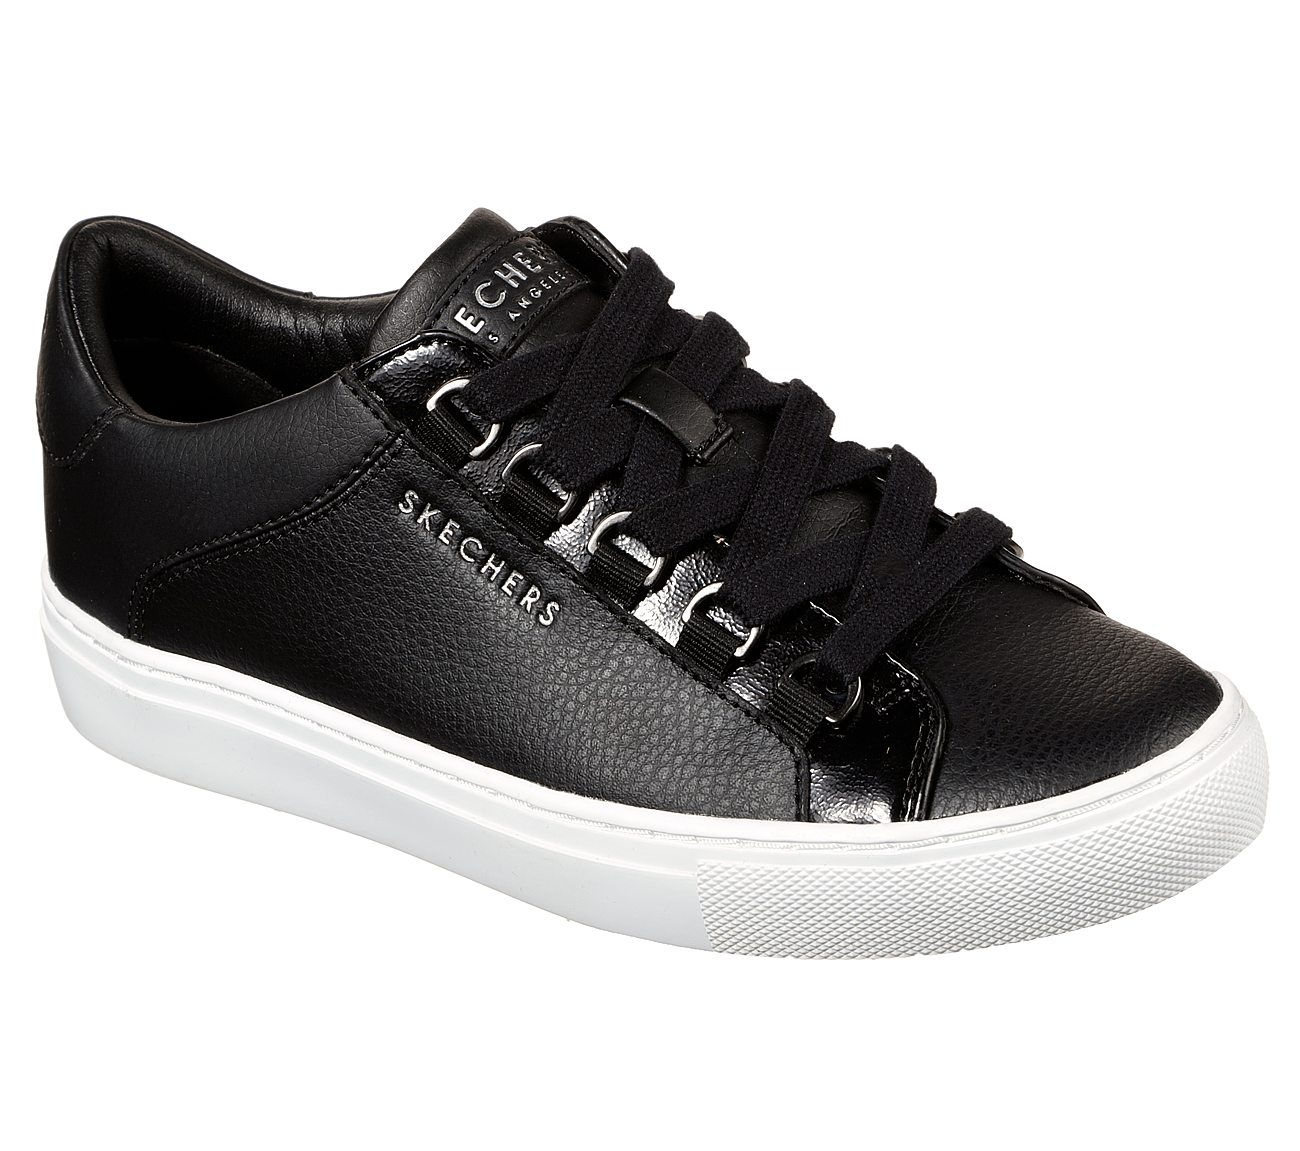 656fc8f0132 Buy SKECHERS Side Street SKECHER Street Shoes only £64.00